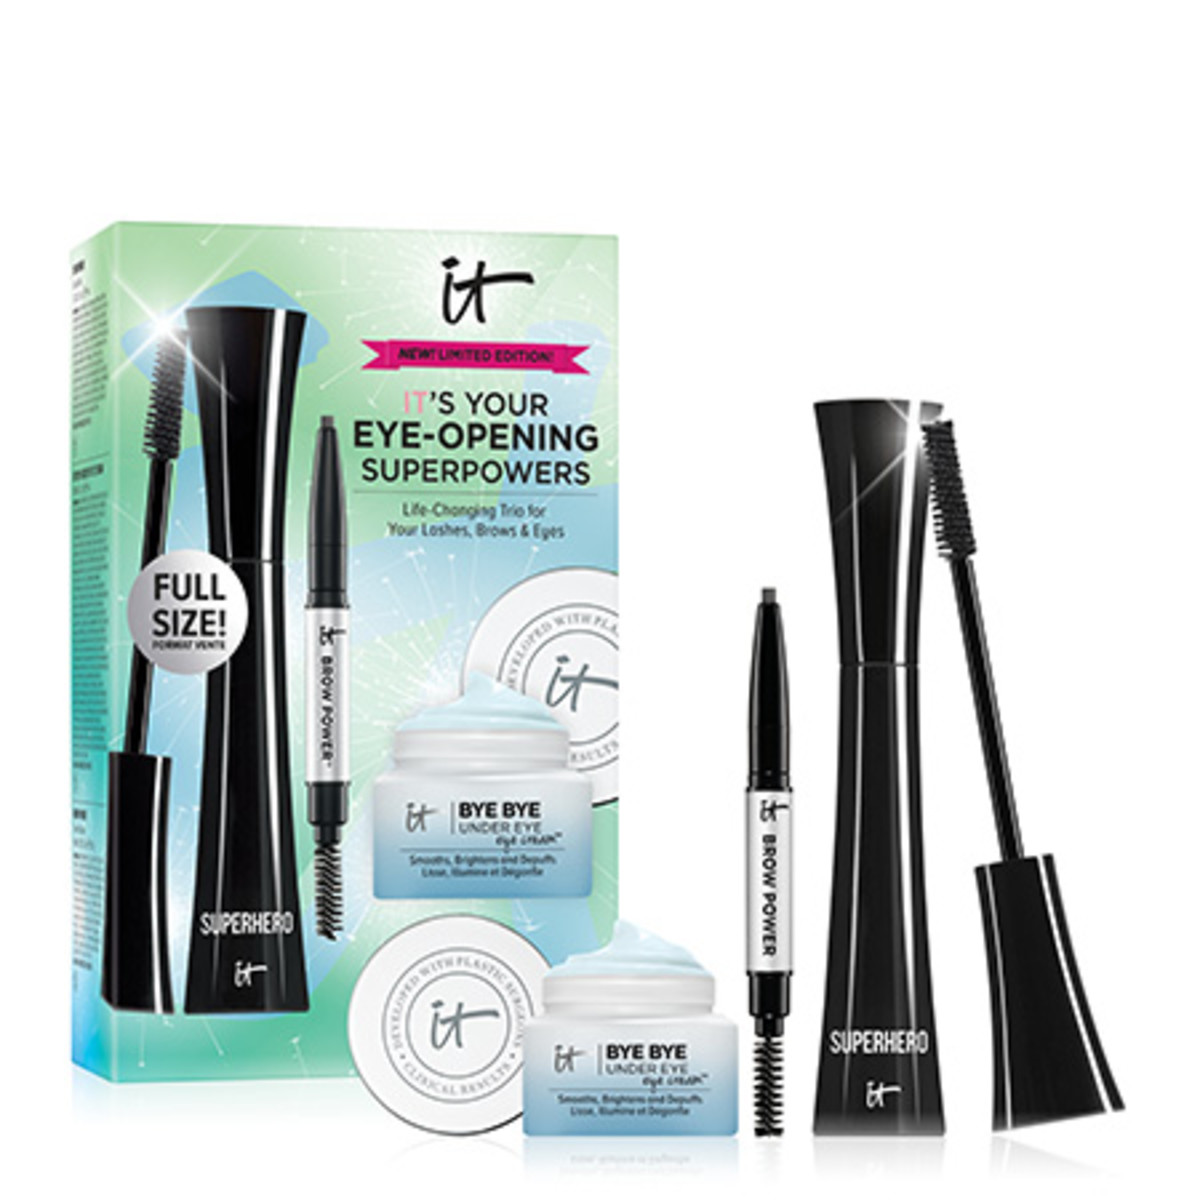 IT Cosmetics IT's Your Eye Opening Superpowers Products and Box